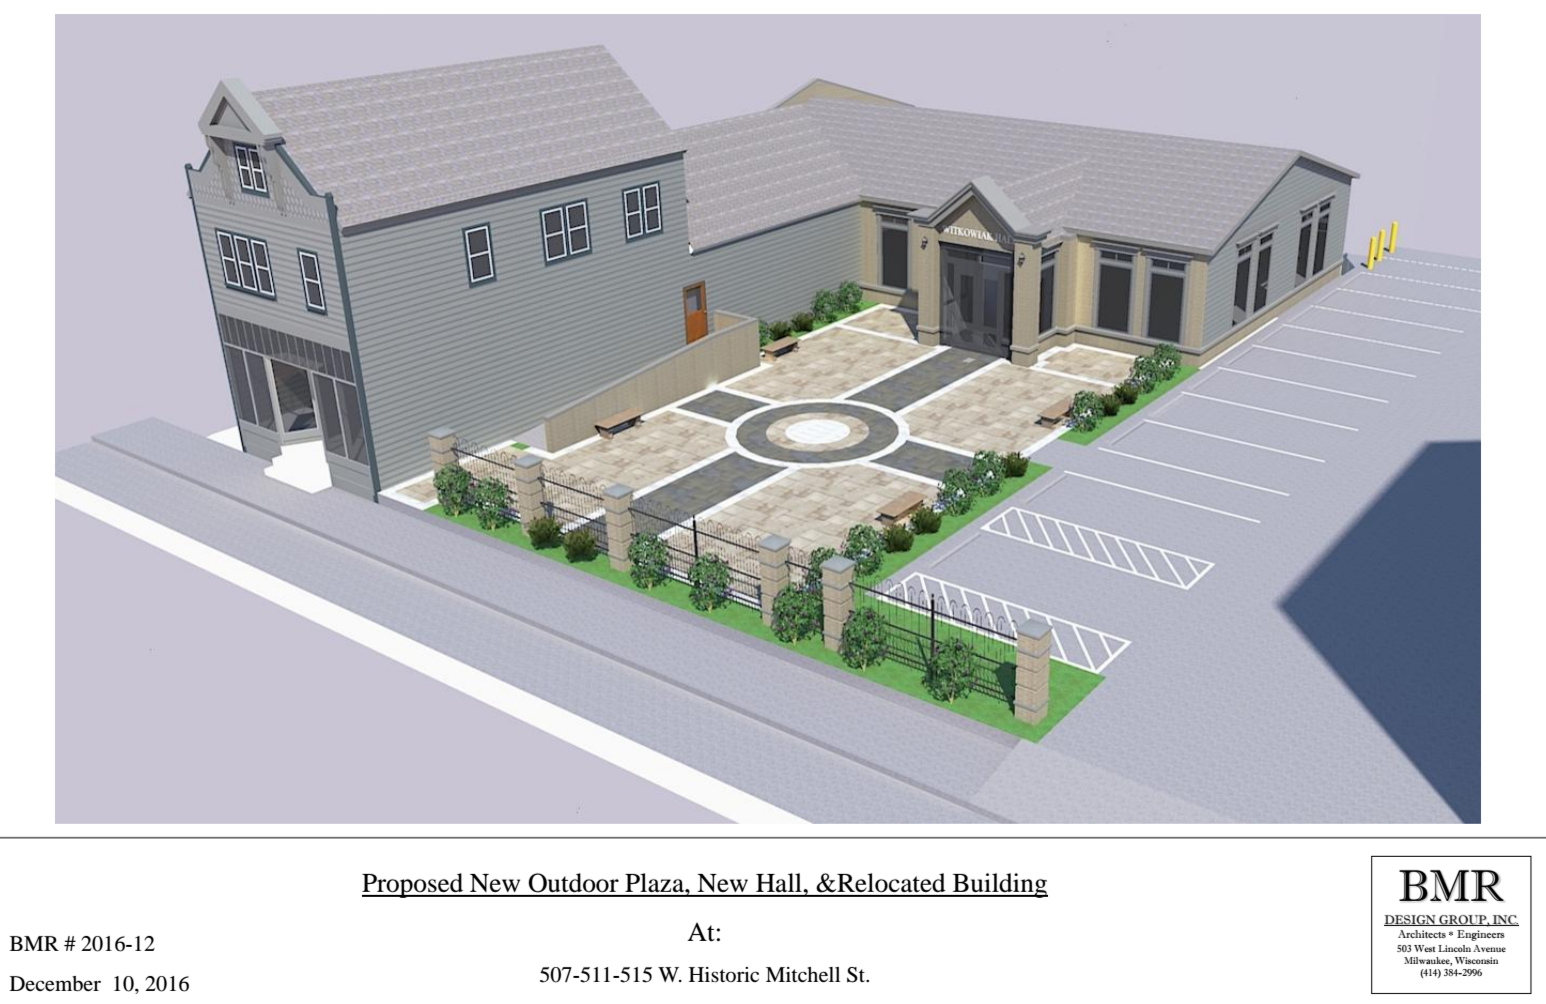 Proposed New Outdoor Plaza, New Hall & Relocated Building